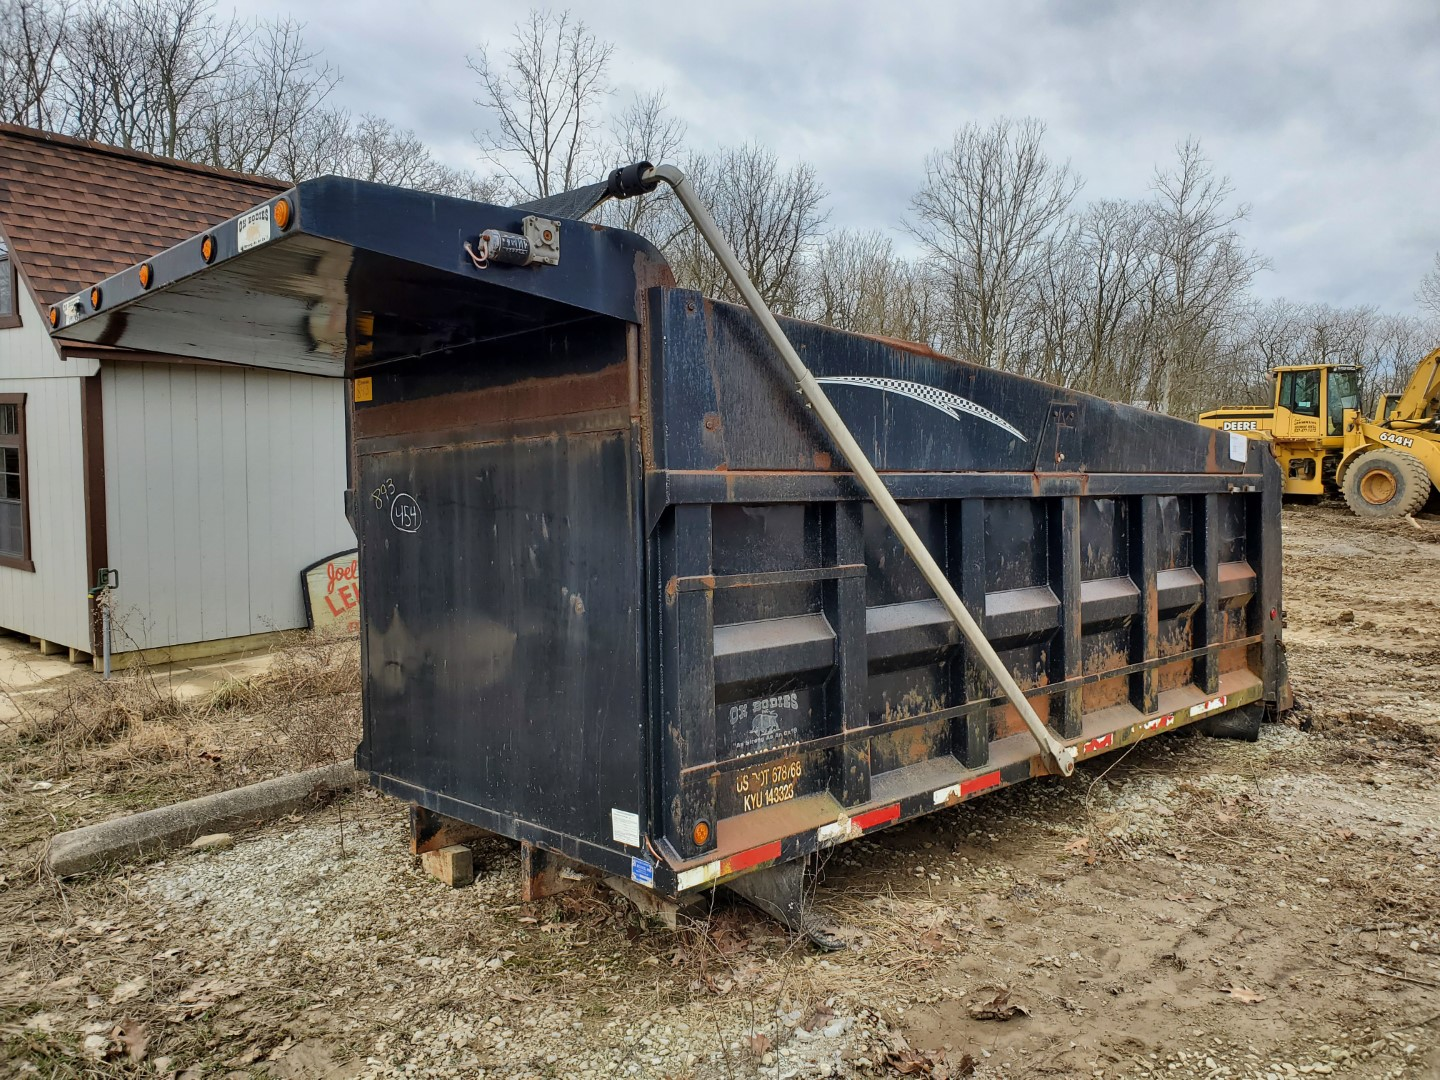 Oxbodies 16 ft, 17-19 Yard Dump Bed w/ Tarp System, Loading Fee, $350 - Image 2 of 6